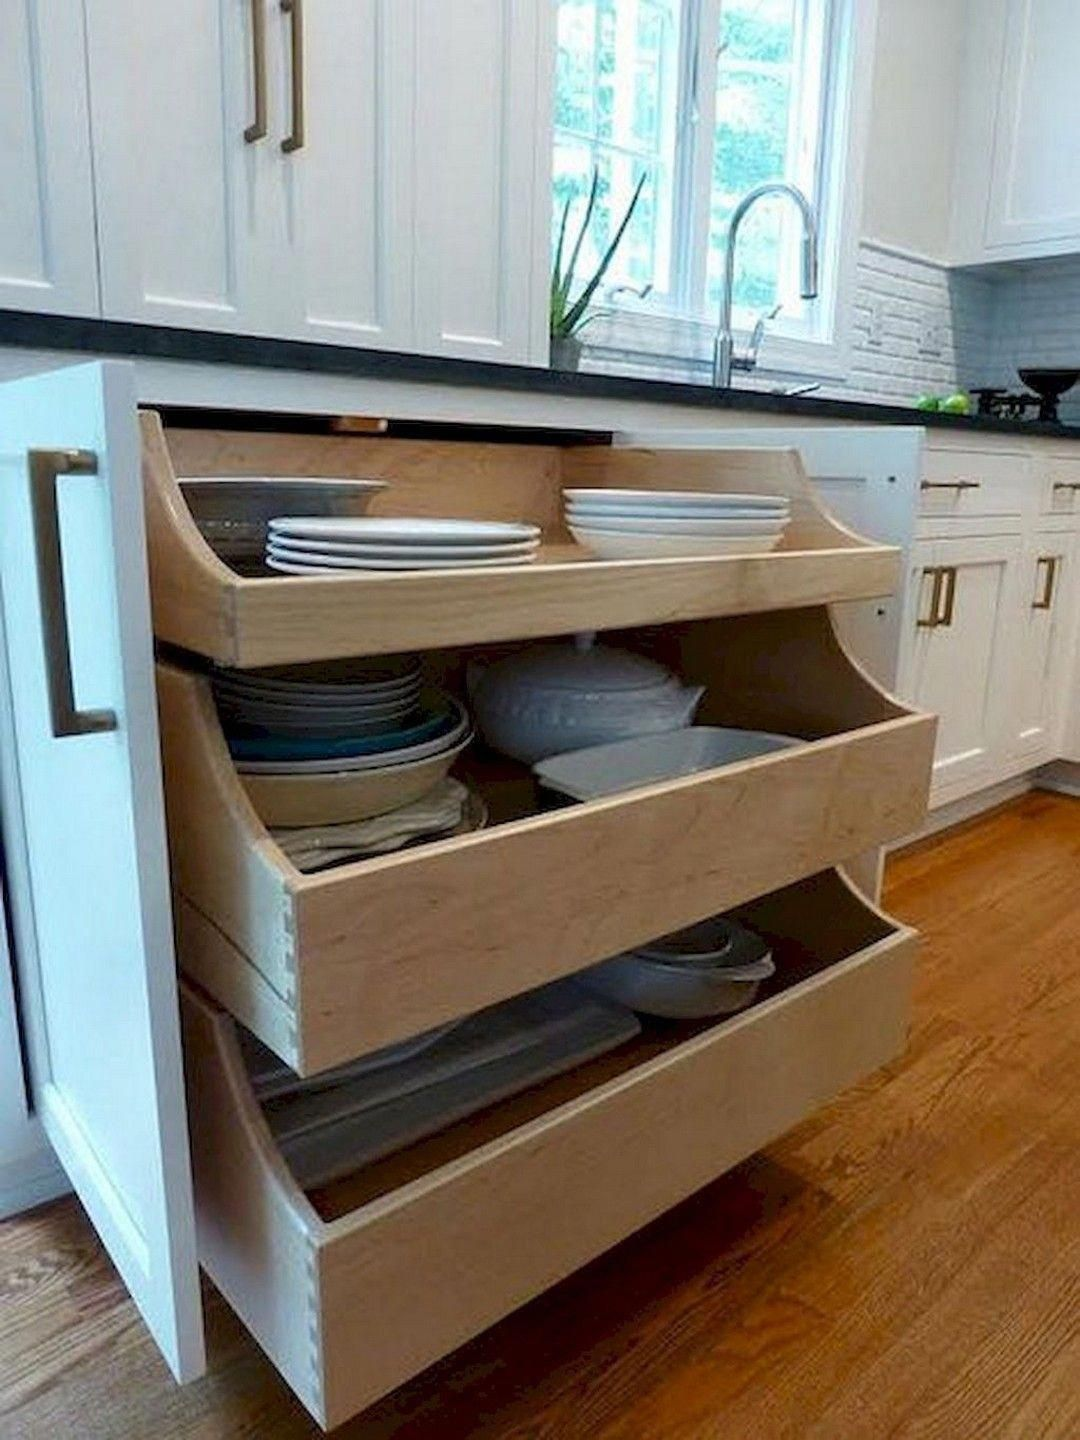 This is how adults due storage.  #luxmoredesigns #luxmorestaging #design #redesign #staging #homestaging #sandiego #lajolla #luxmore #occupiedstaging #vacationstaging #vacantstaging #smallkitchen #homestagingavantapres